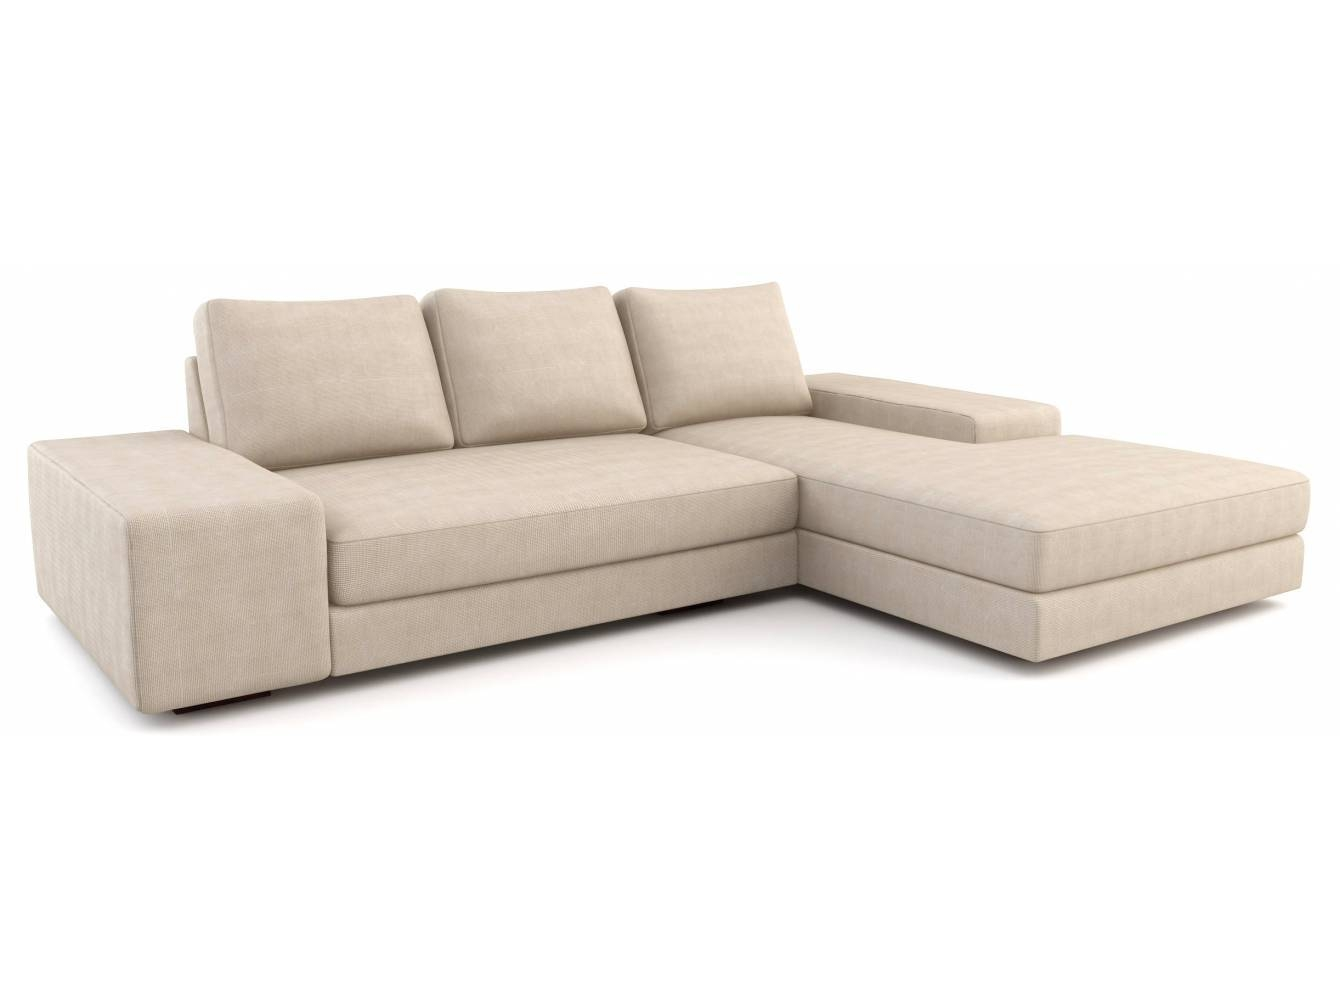 Lovely Down Filled Sectional Sofa 89 For Your Short Sectional with Down Filled Sectional Sofas (Image 15 of 30)